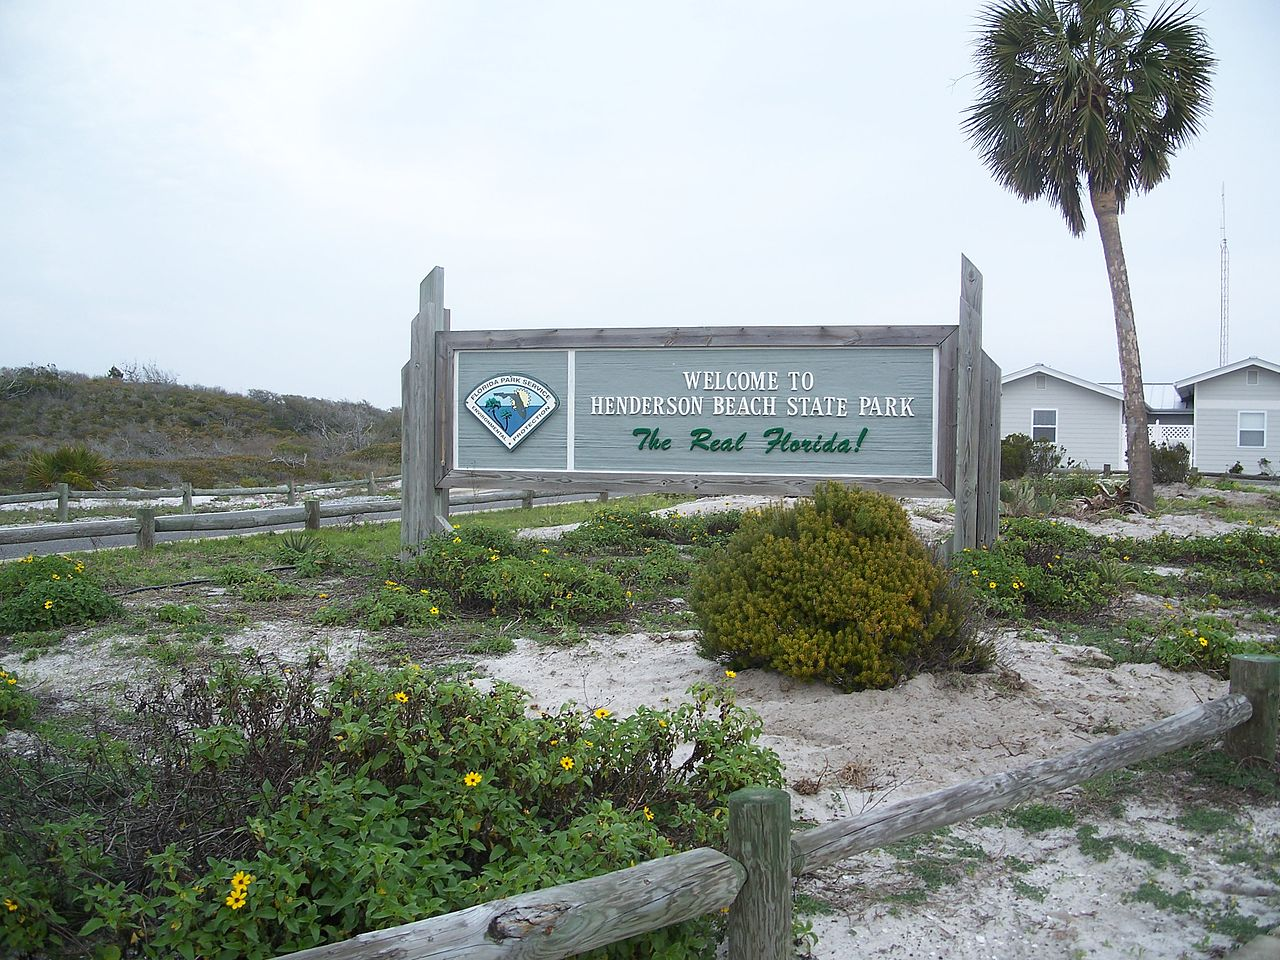 Incredible Place Of Emerald Coast That Draws The Tourist-Henderson Beach State Park